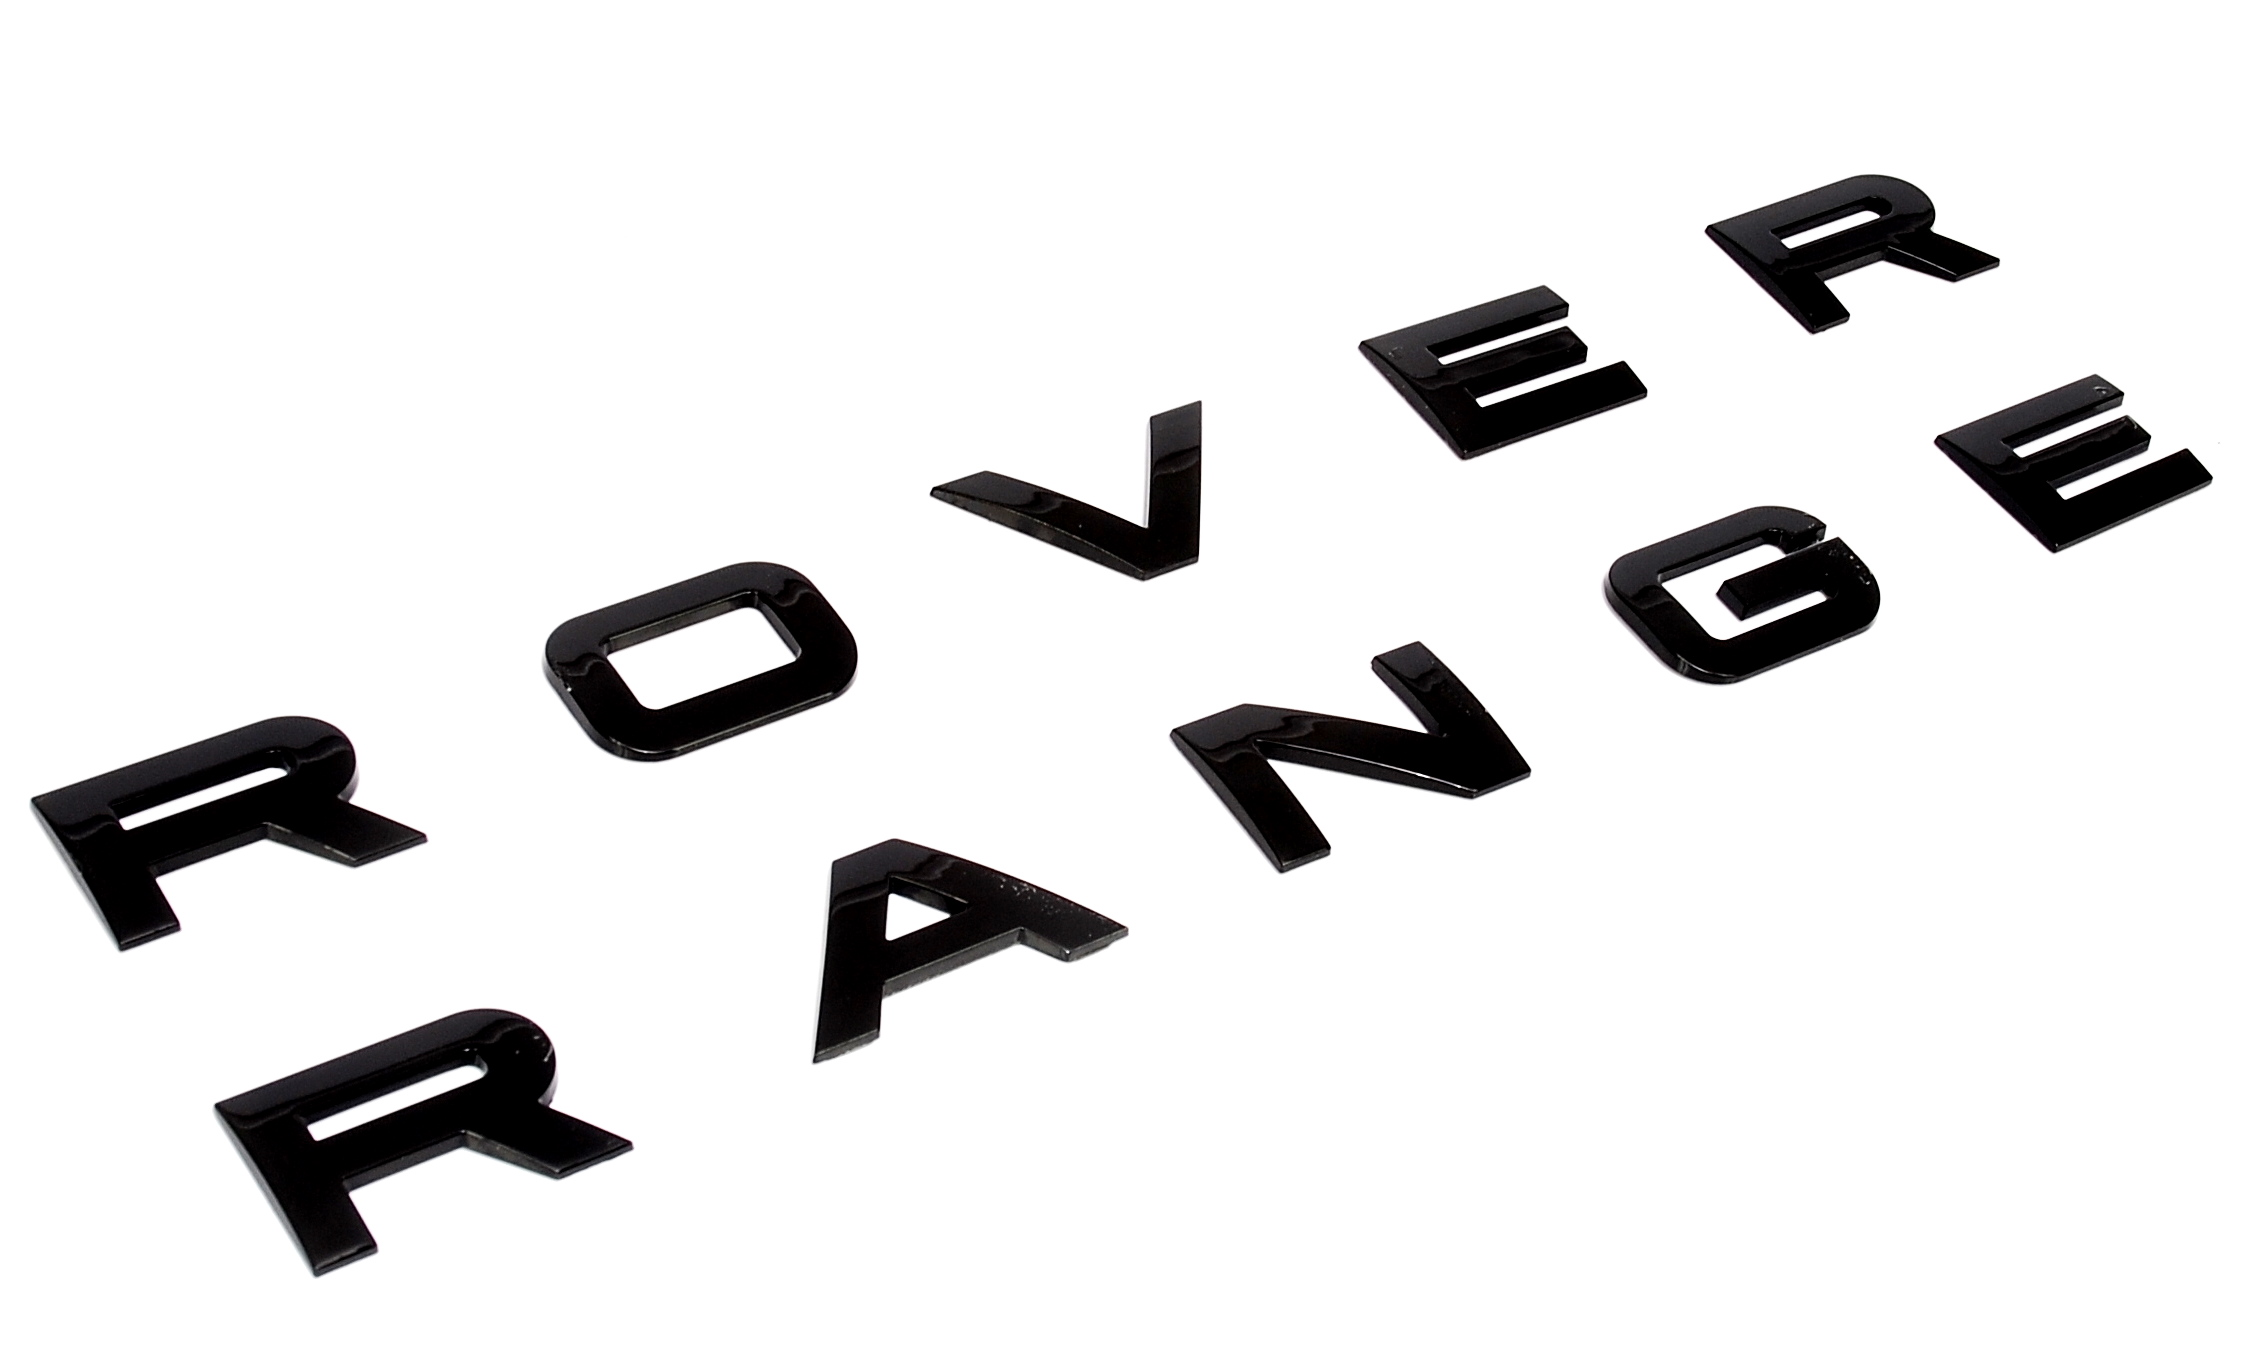 Gloss Black rear tailgate lettering for Range Rover L322 vogue hse